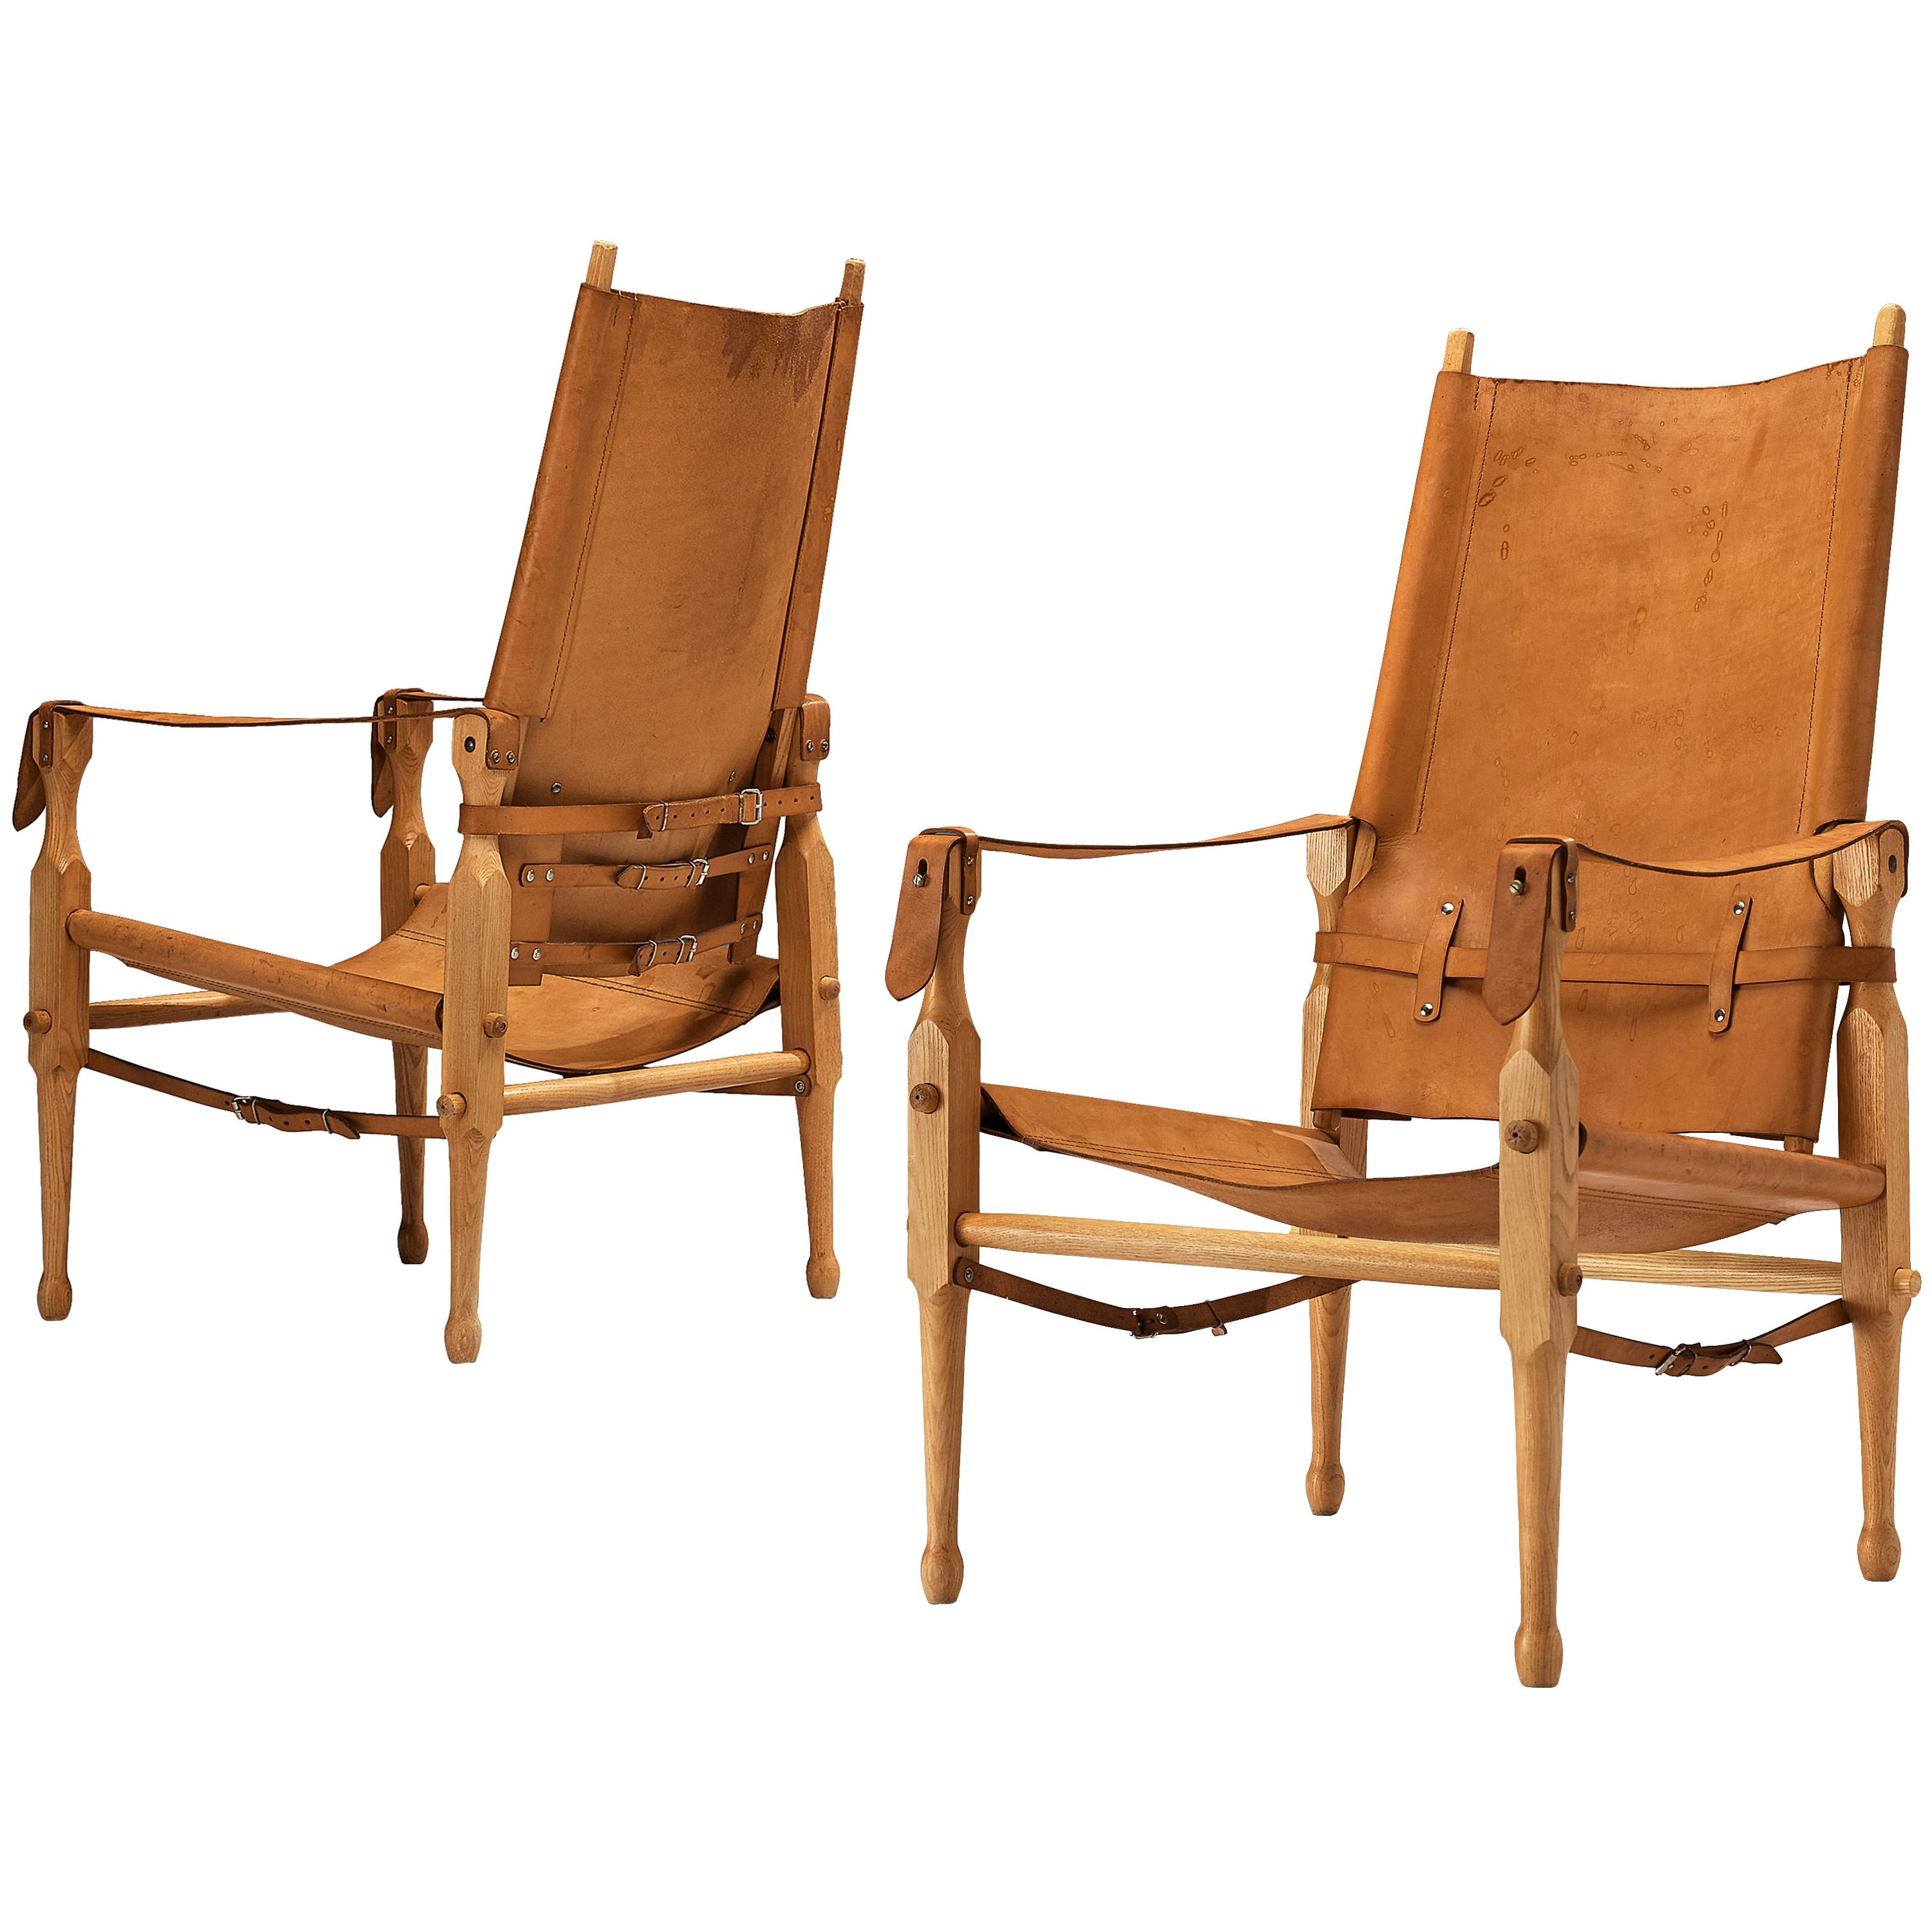 Danish 'Safari' Lounge Chairs in Solid Beech and Cognac Leather